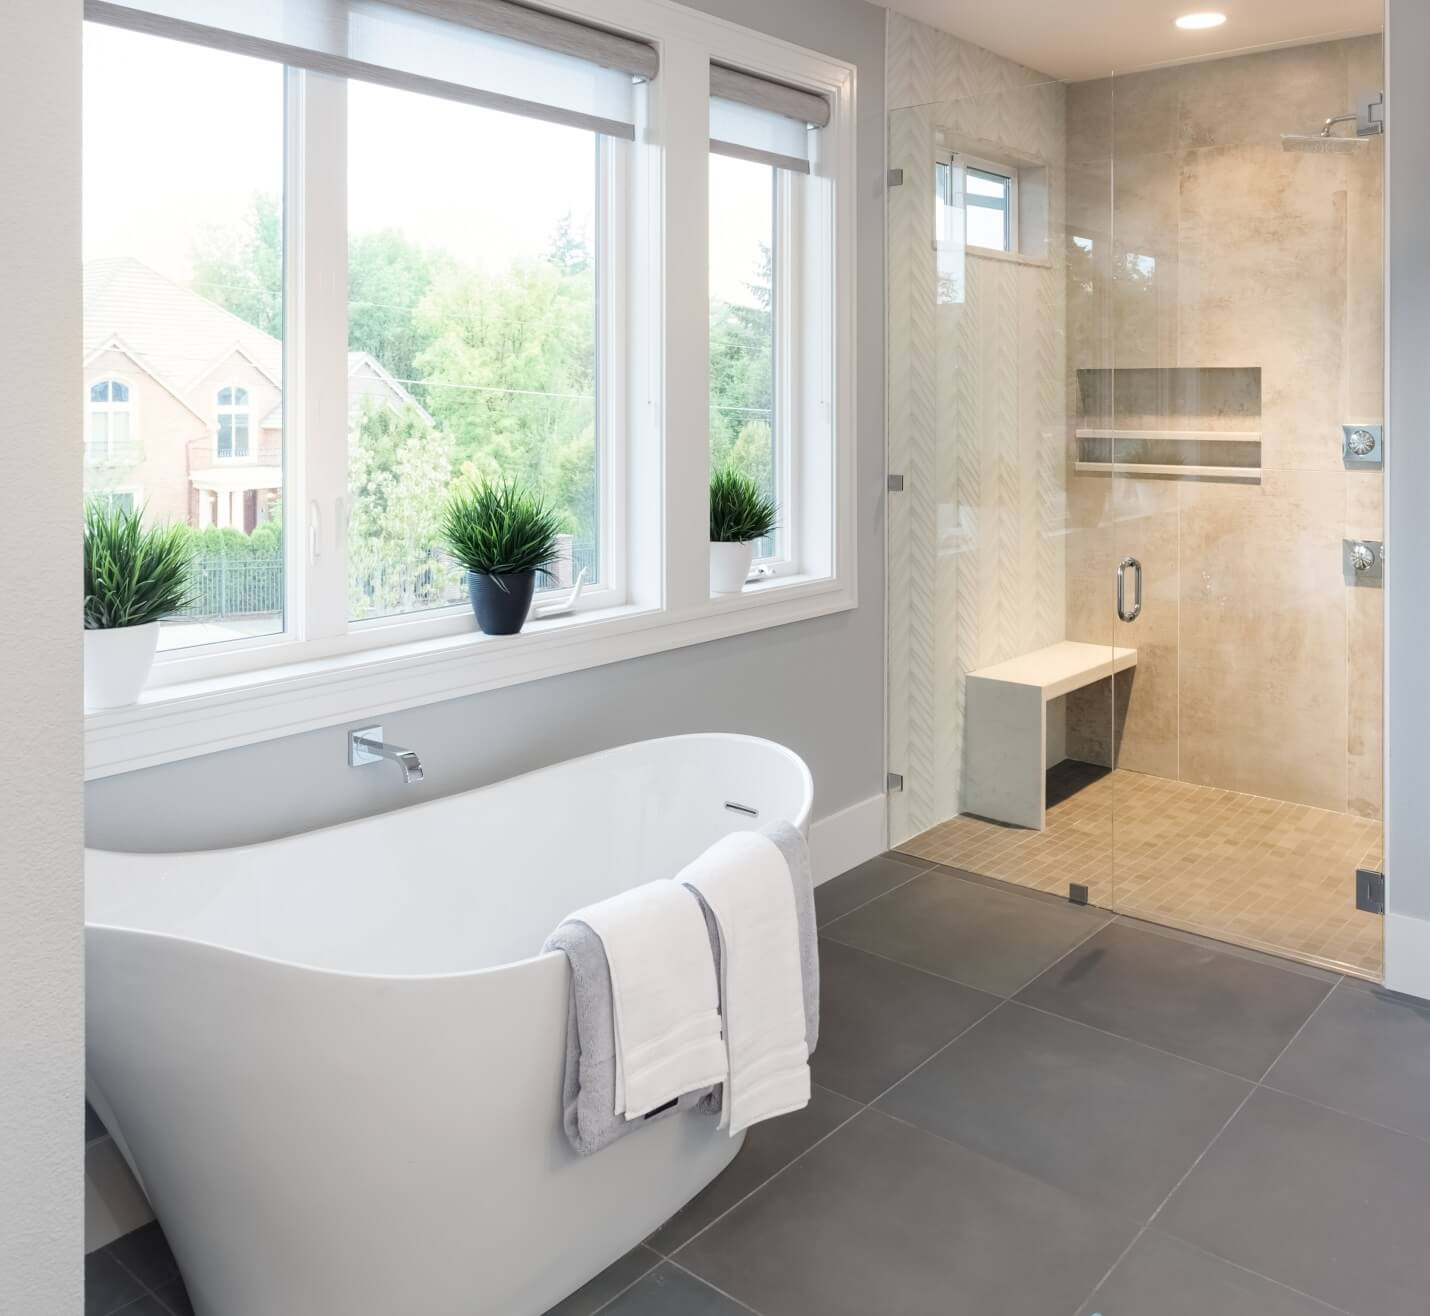 Selecting an Appropriate Window for Your Bathroom   KW&D